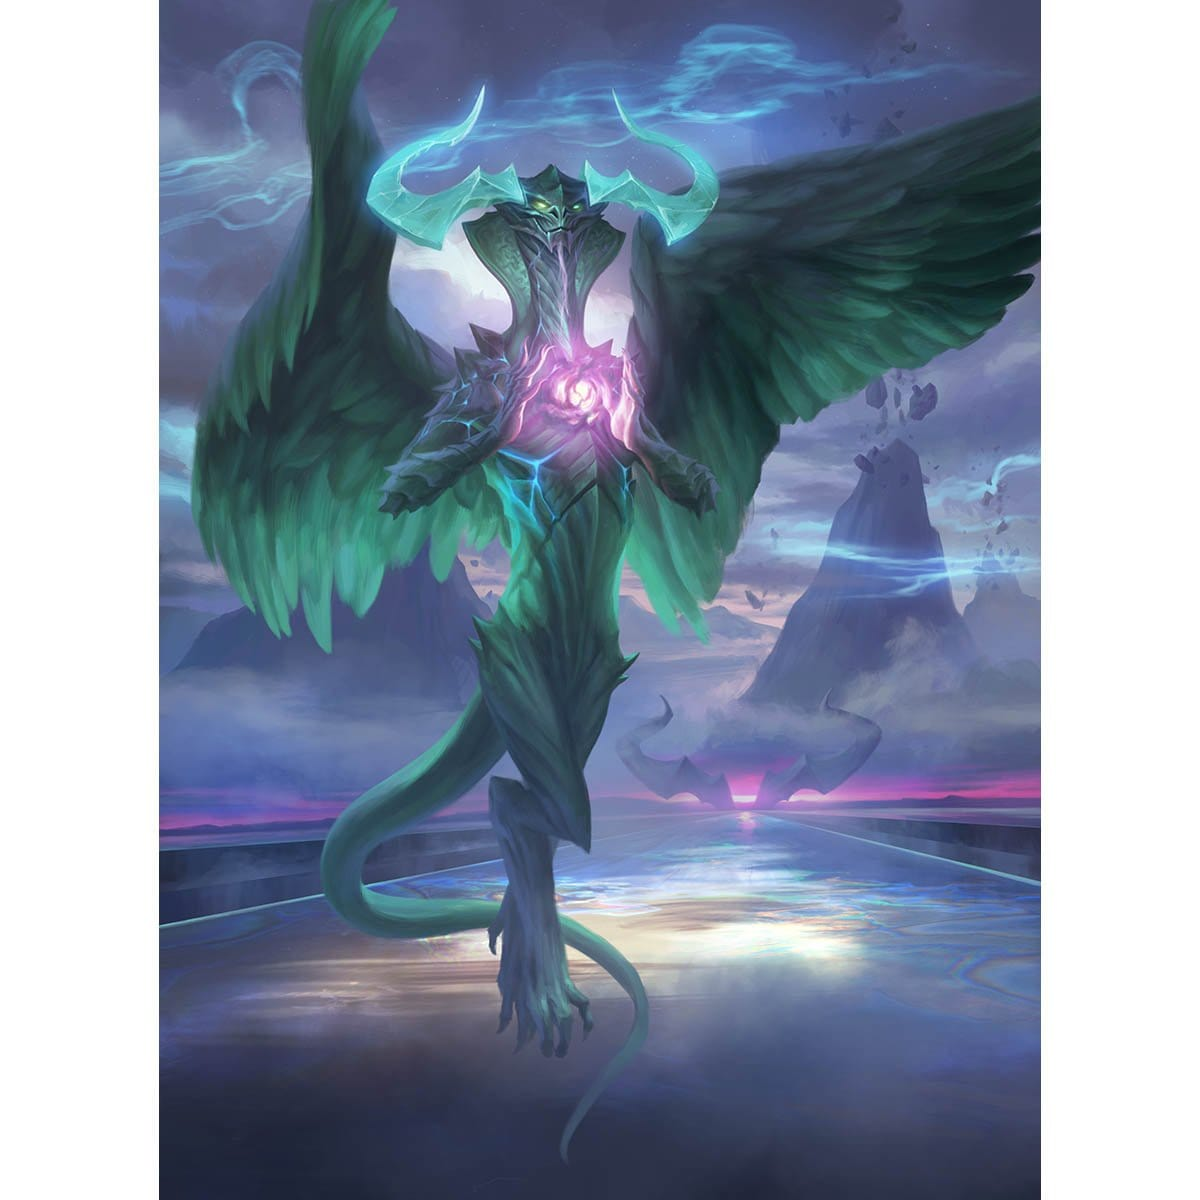 Ugin, the Ineffable Print - Print - Original Magic Art - Accessories for Magic the Gathering and other card games